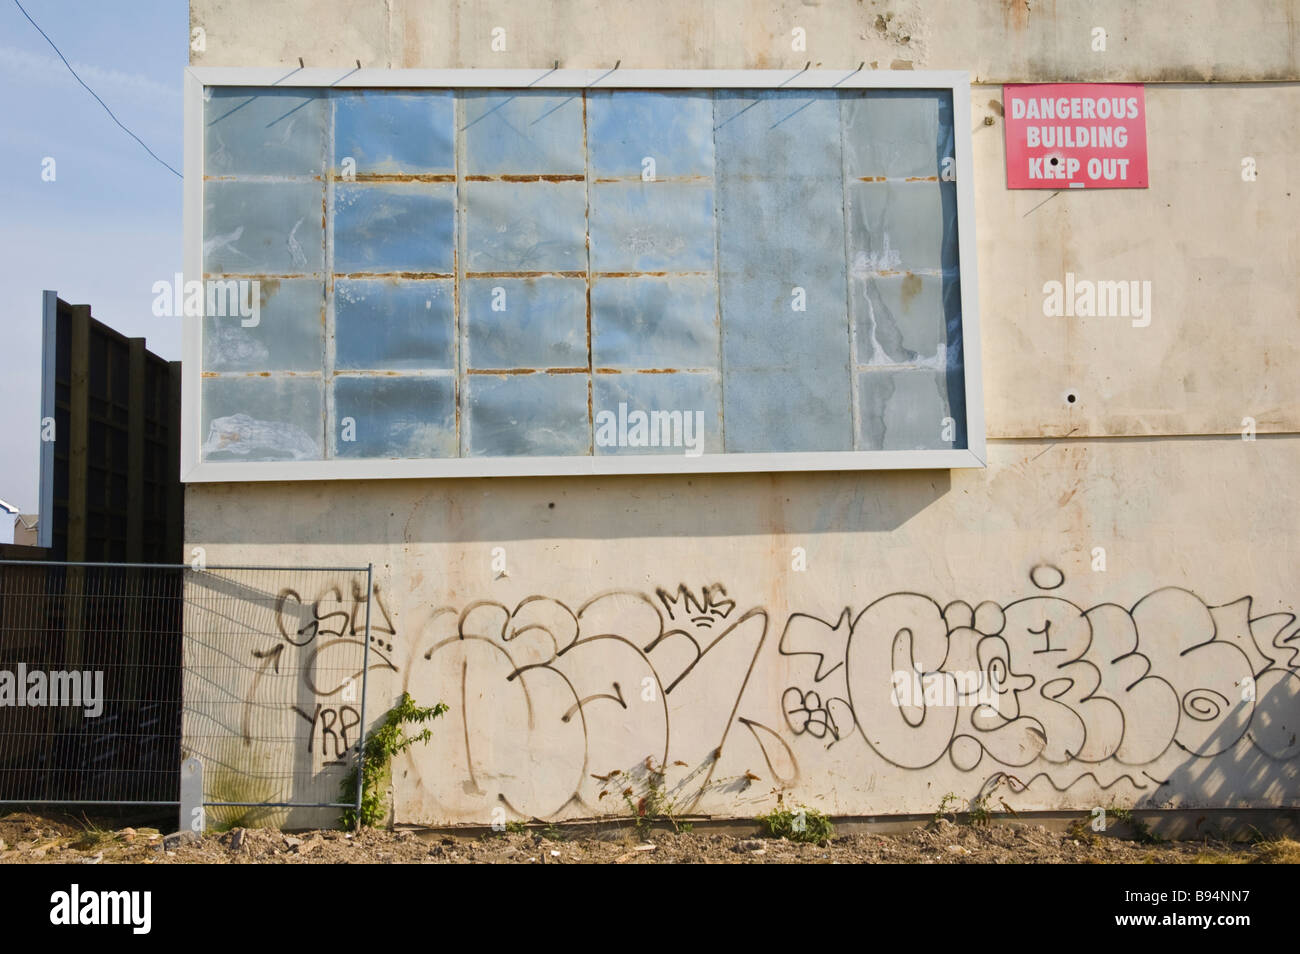 Empty advertising billboard on derelict building in Newport South Wales UK - Stock Image